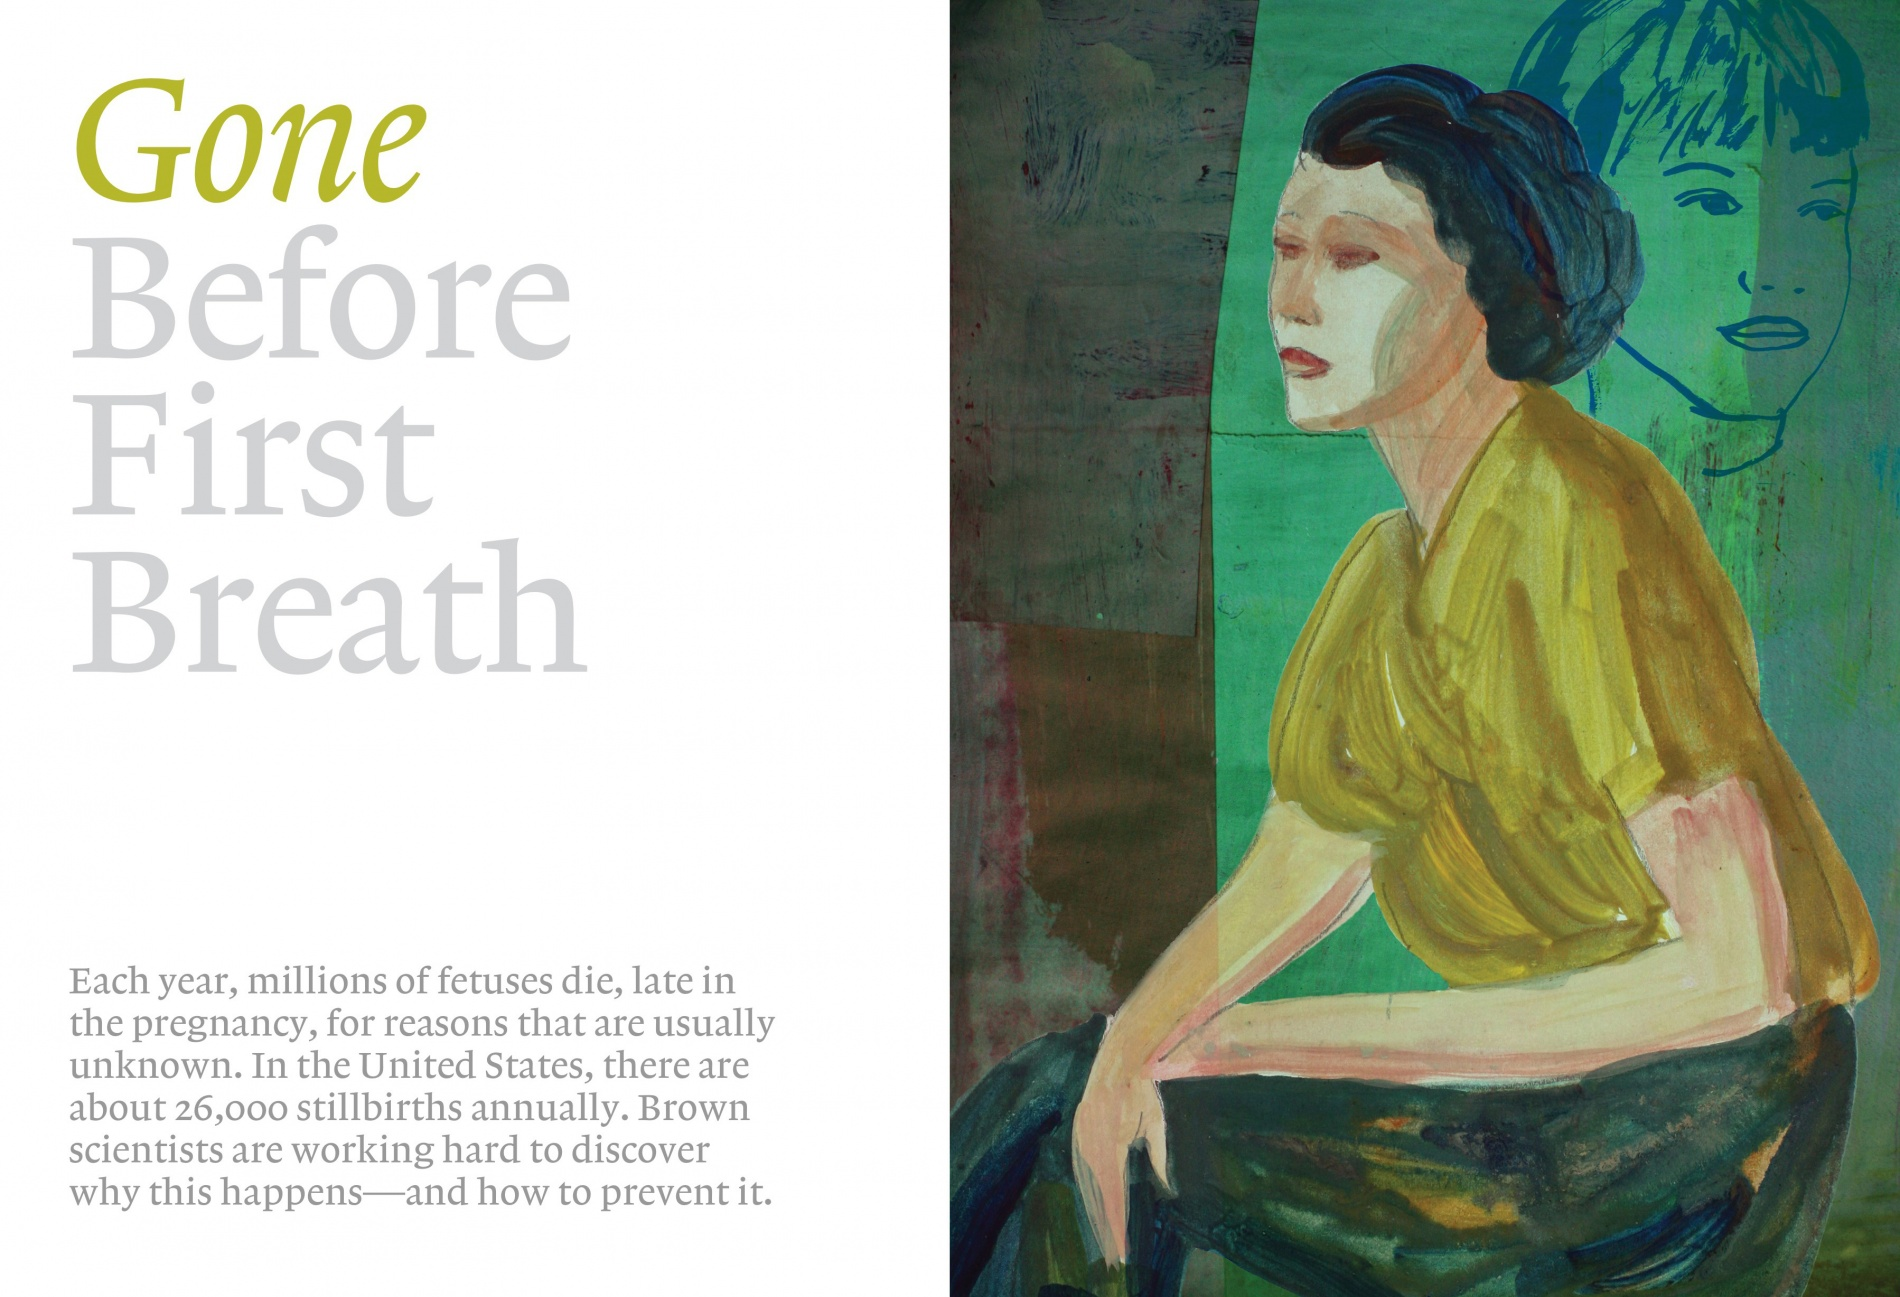 A painting of a woman in green against a green background. Title reads: Gone Before First Breath. Subtitle reads: Each year, millions of fetuses die, late in the pregnancy, for reasons that are usually unknown. In the United States, there are about 26,000 stillbirths annually. Brown scientists are working hard to discover why this happens—and how to prevent it.